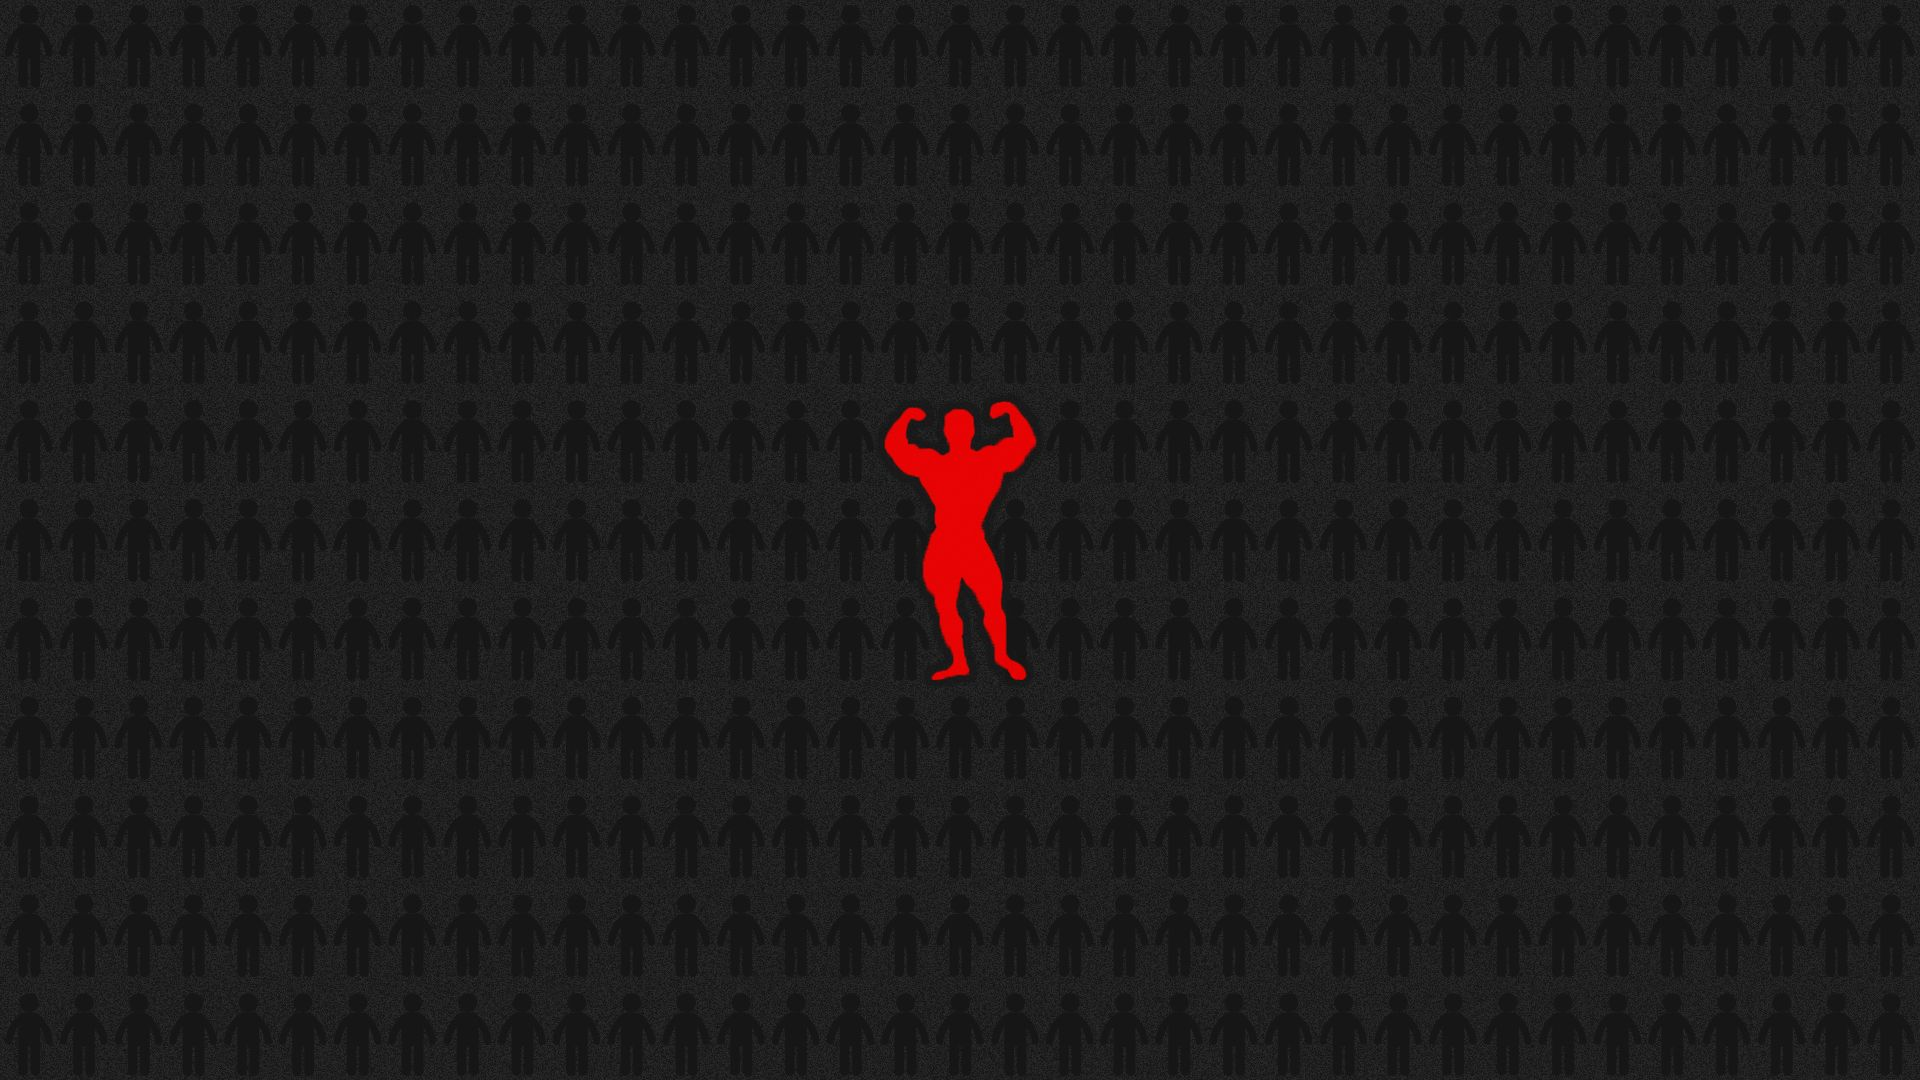 Gym Wallpaper HD 1920×1080 Gym Wallpaper (41 Wallpapers